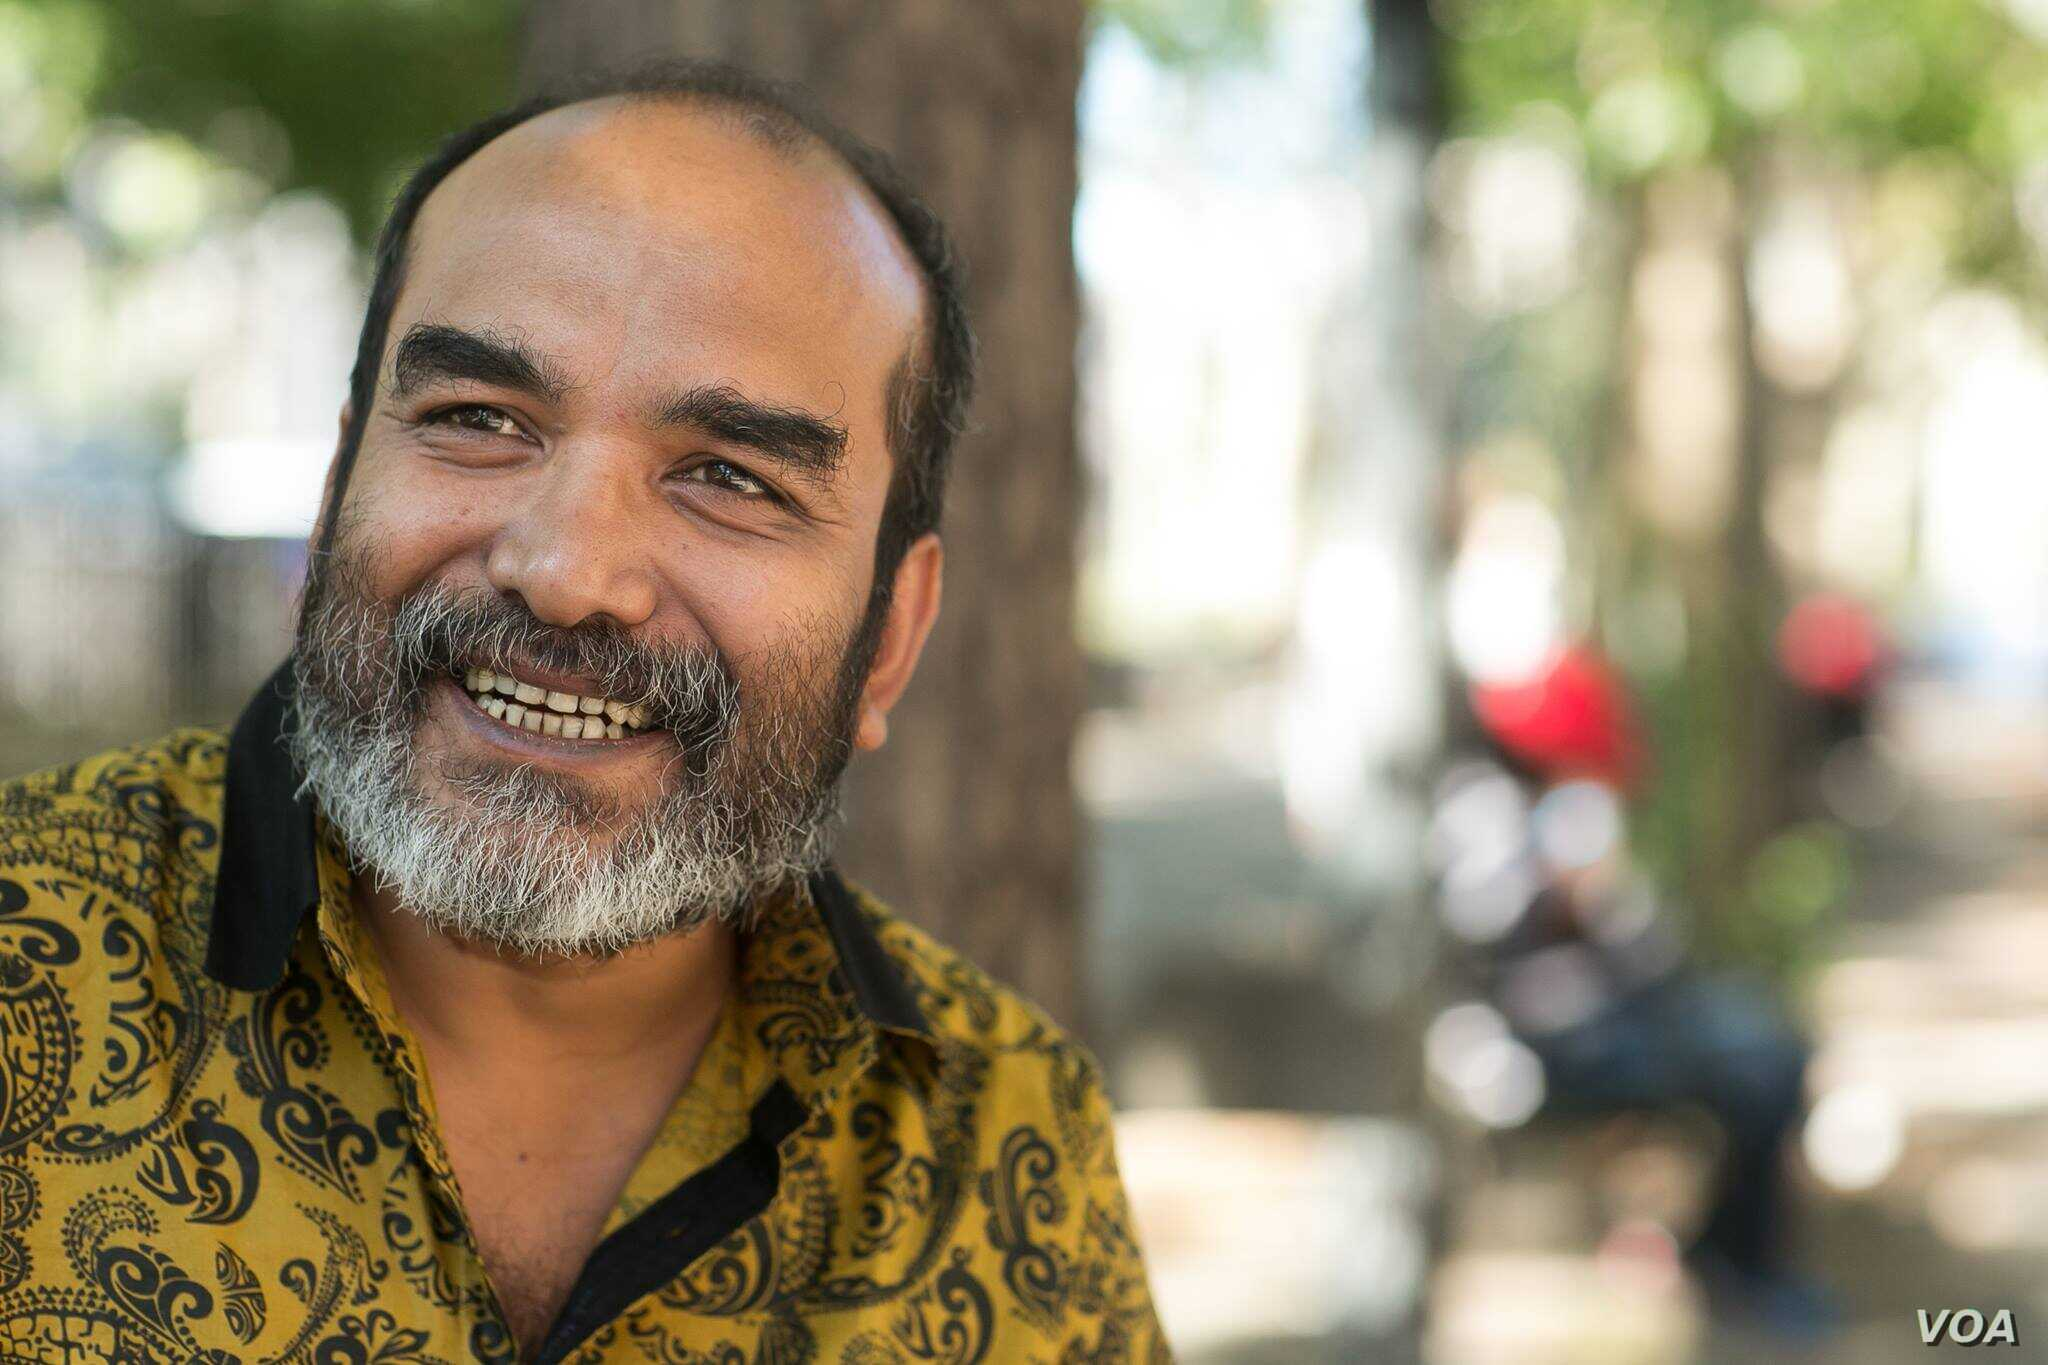 Mahbub Leelen, co-founder of Dhaka's Shuddhashar Publishing House, which published many books authored by Avijit Roy, in New York. Leelen fled Bangladesh closing down the publishing house in Dhaka after his co-publisher escaped a fatal attack from ...